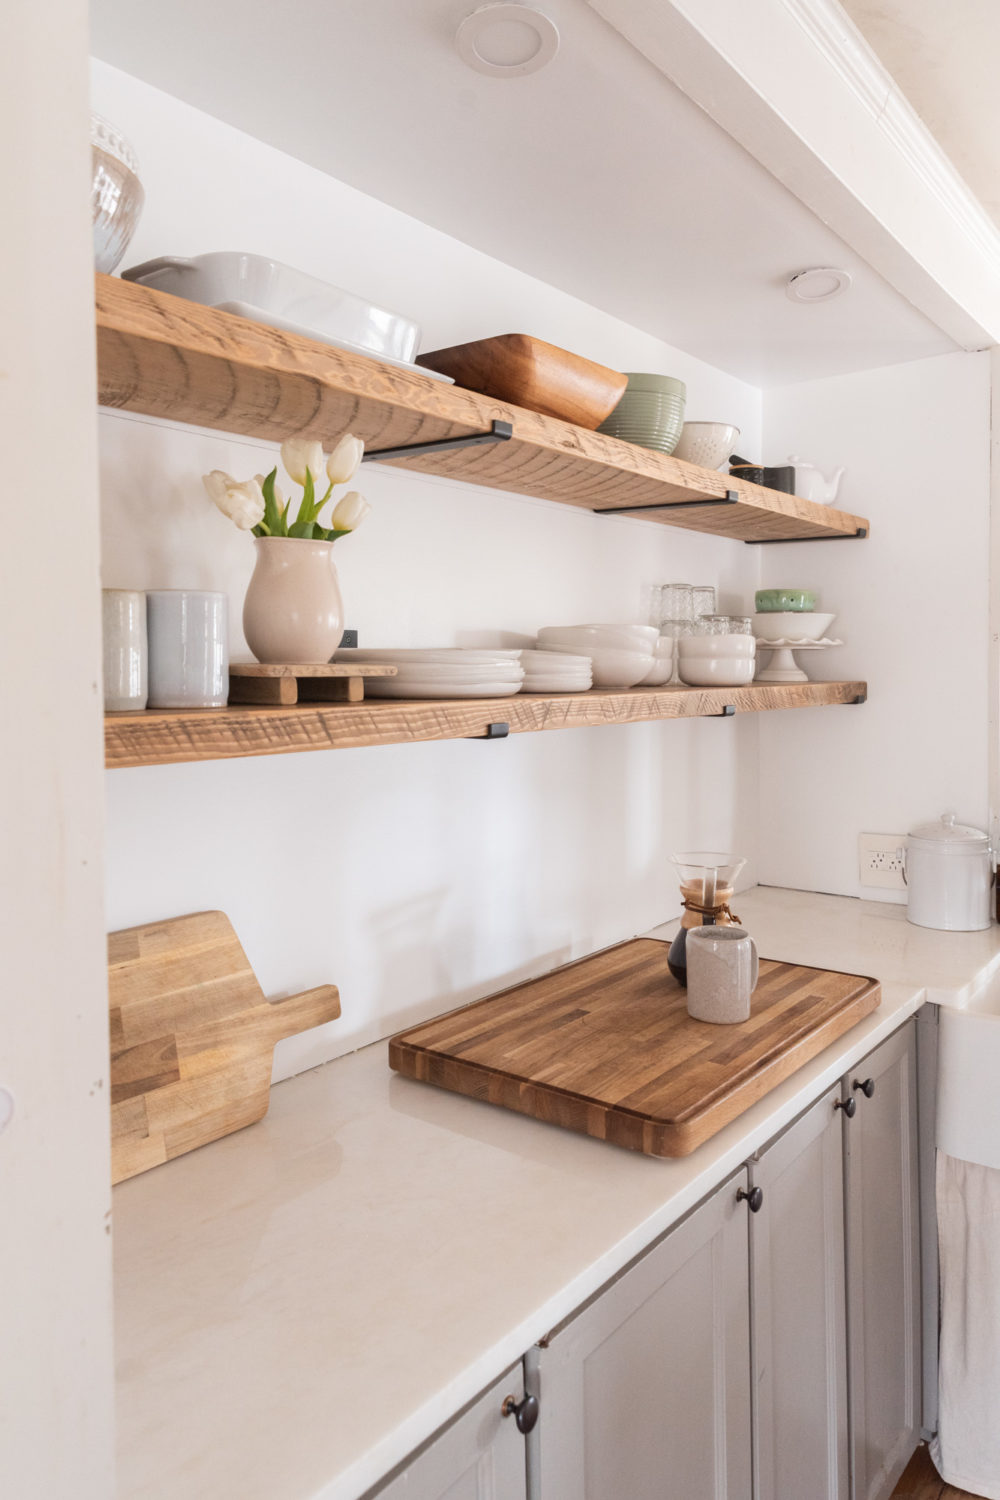 The Wild Decoelis | Kitchen shelves rough sawn with black iron brackets minimal reclaimed wood and white ceramics.